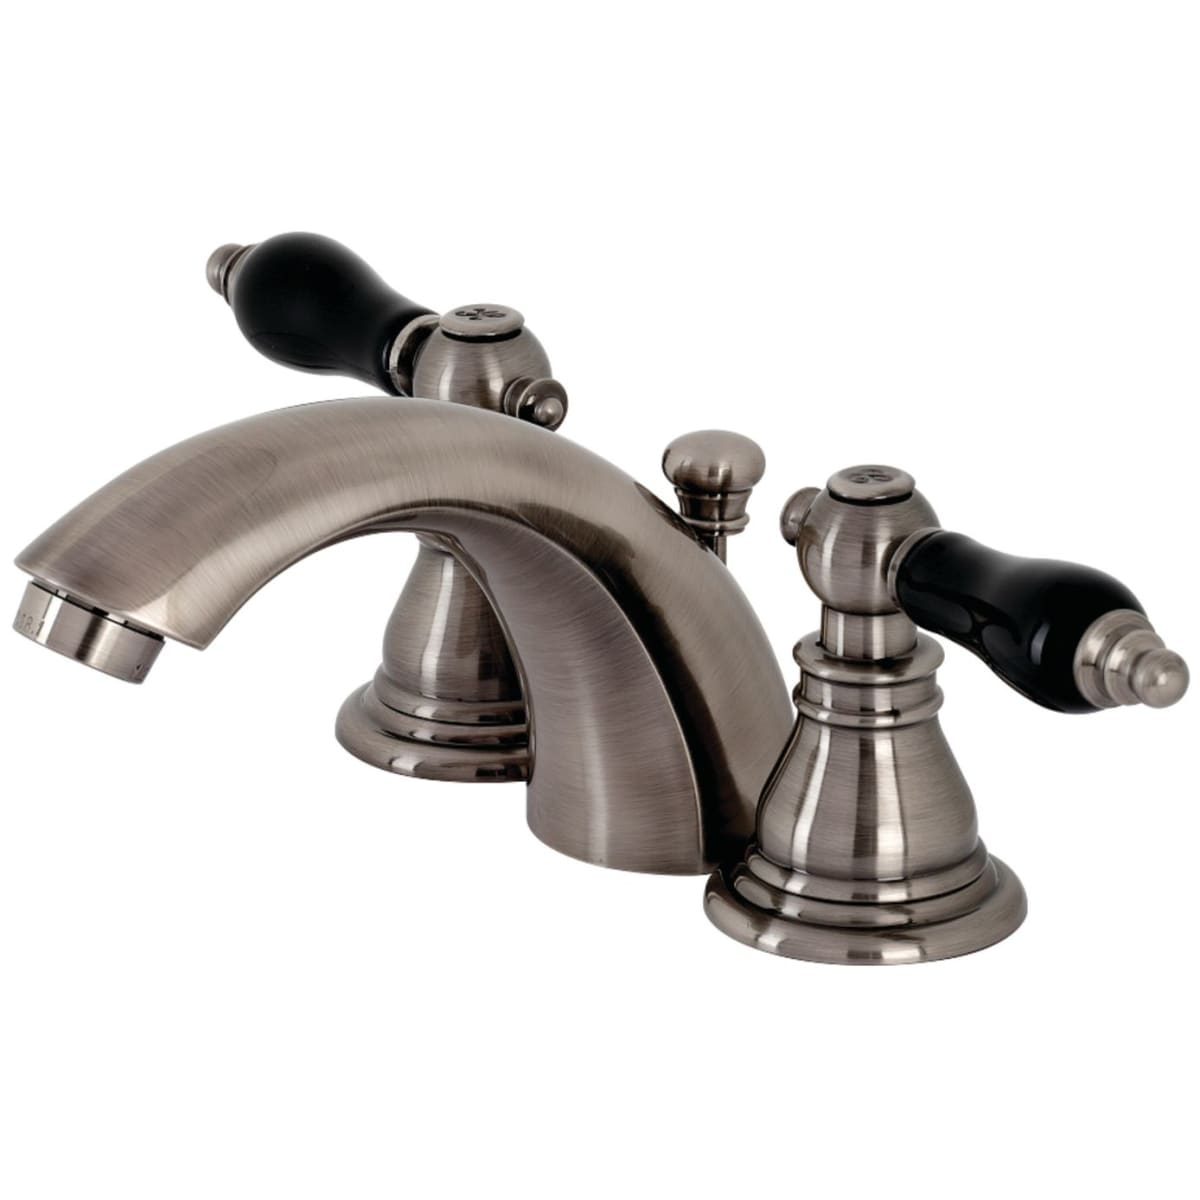 Kingston Brass Kb953akl Black Stainless Duchess 1 2 Gpm Widespread Bathroom Faucet With Pop Up Drain Assembly Faucet Com